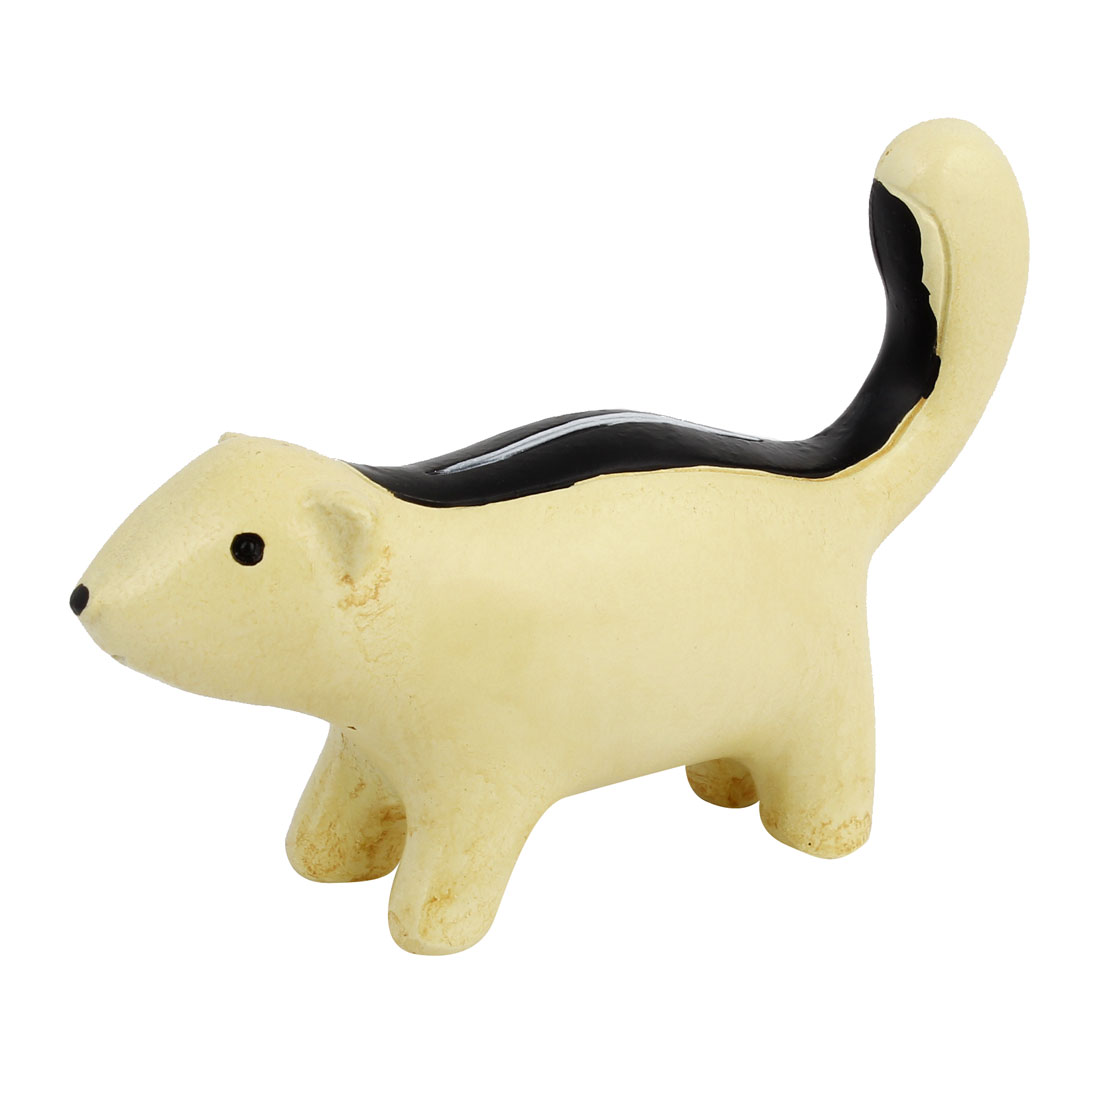 Tabletop Adorn Handmade Craft Squirrel Shape Decoration Black Beige